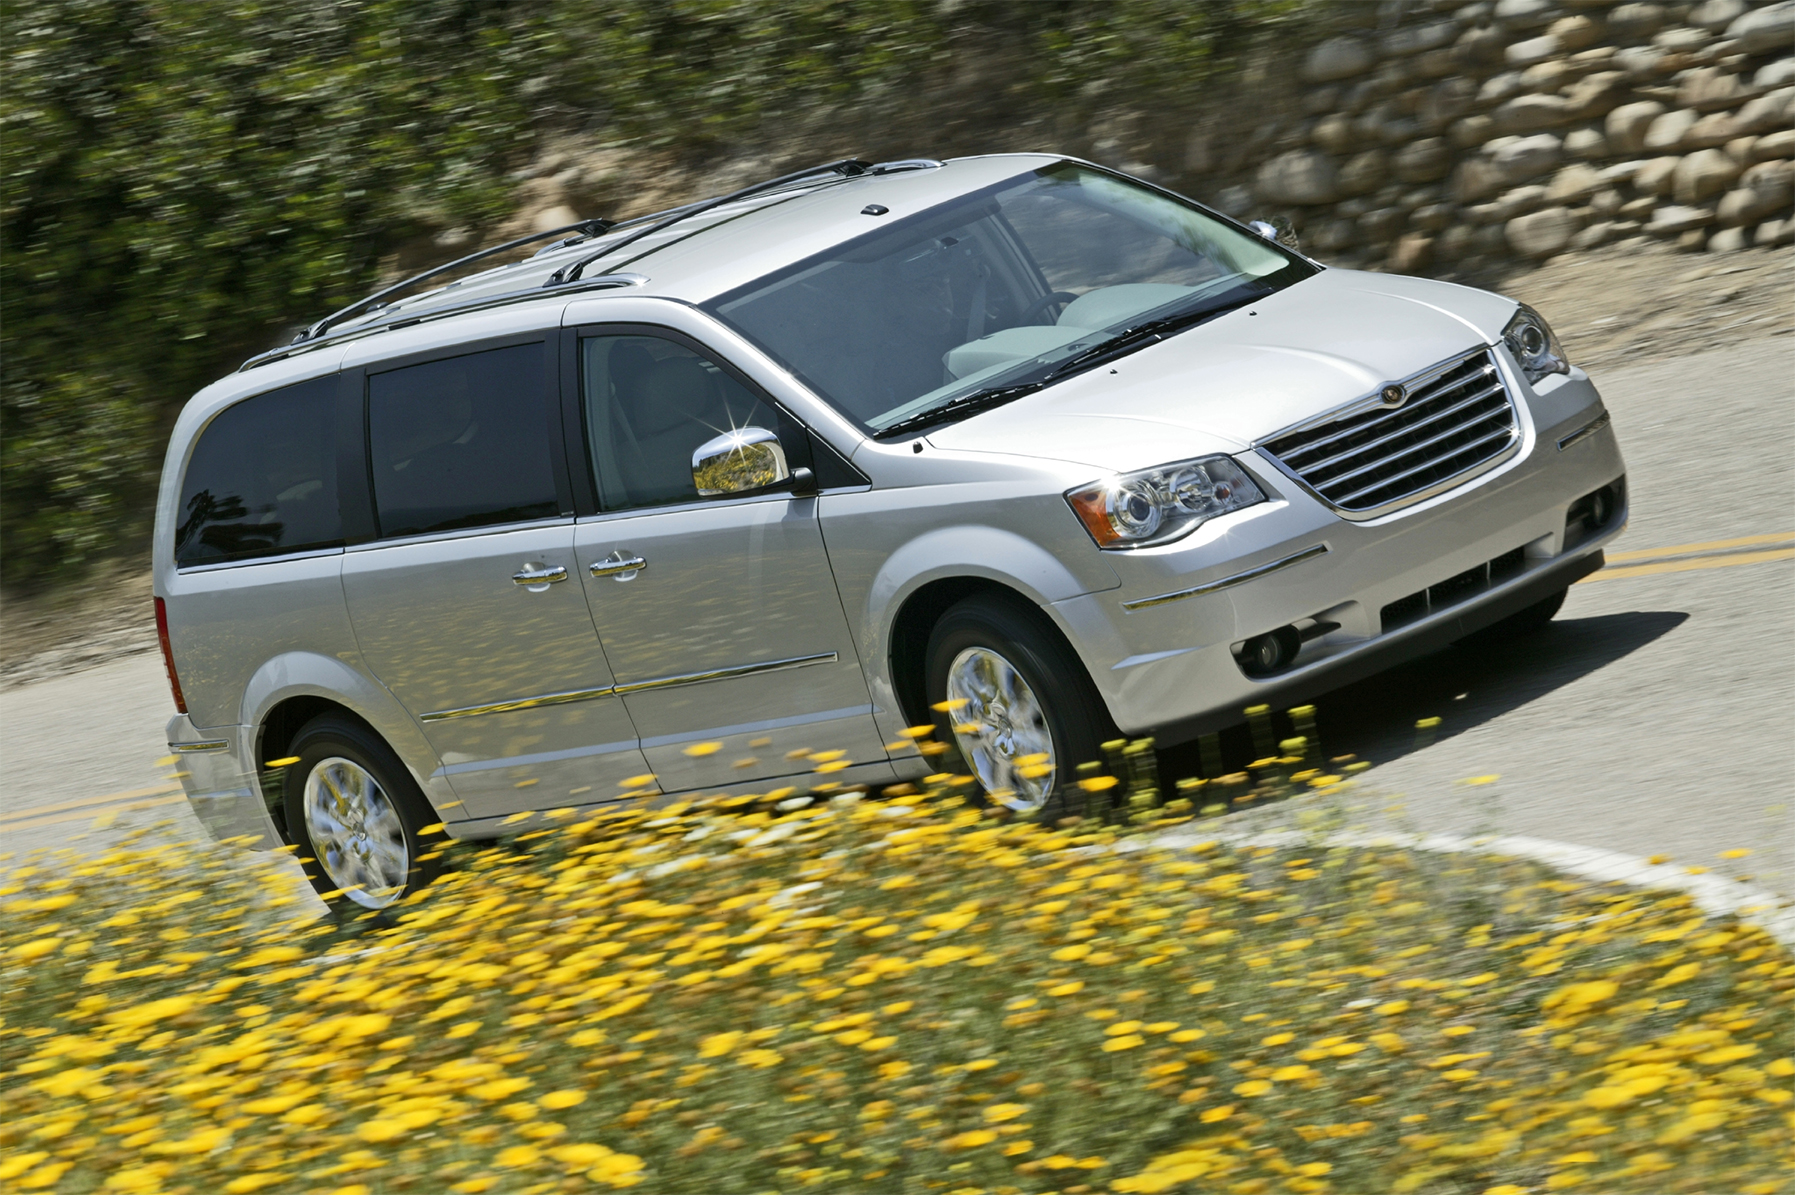 minivan chrysler town and country 2008 prata lateral